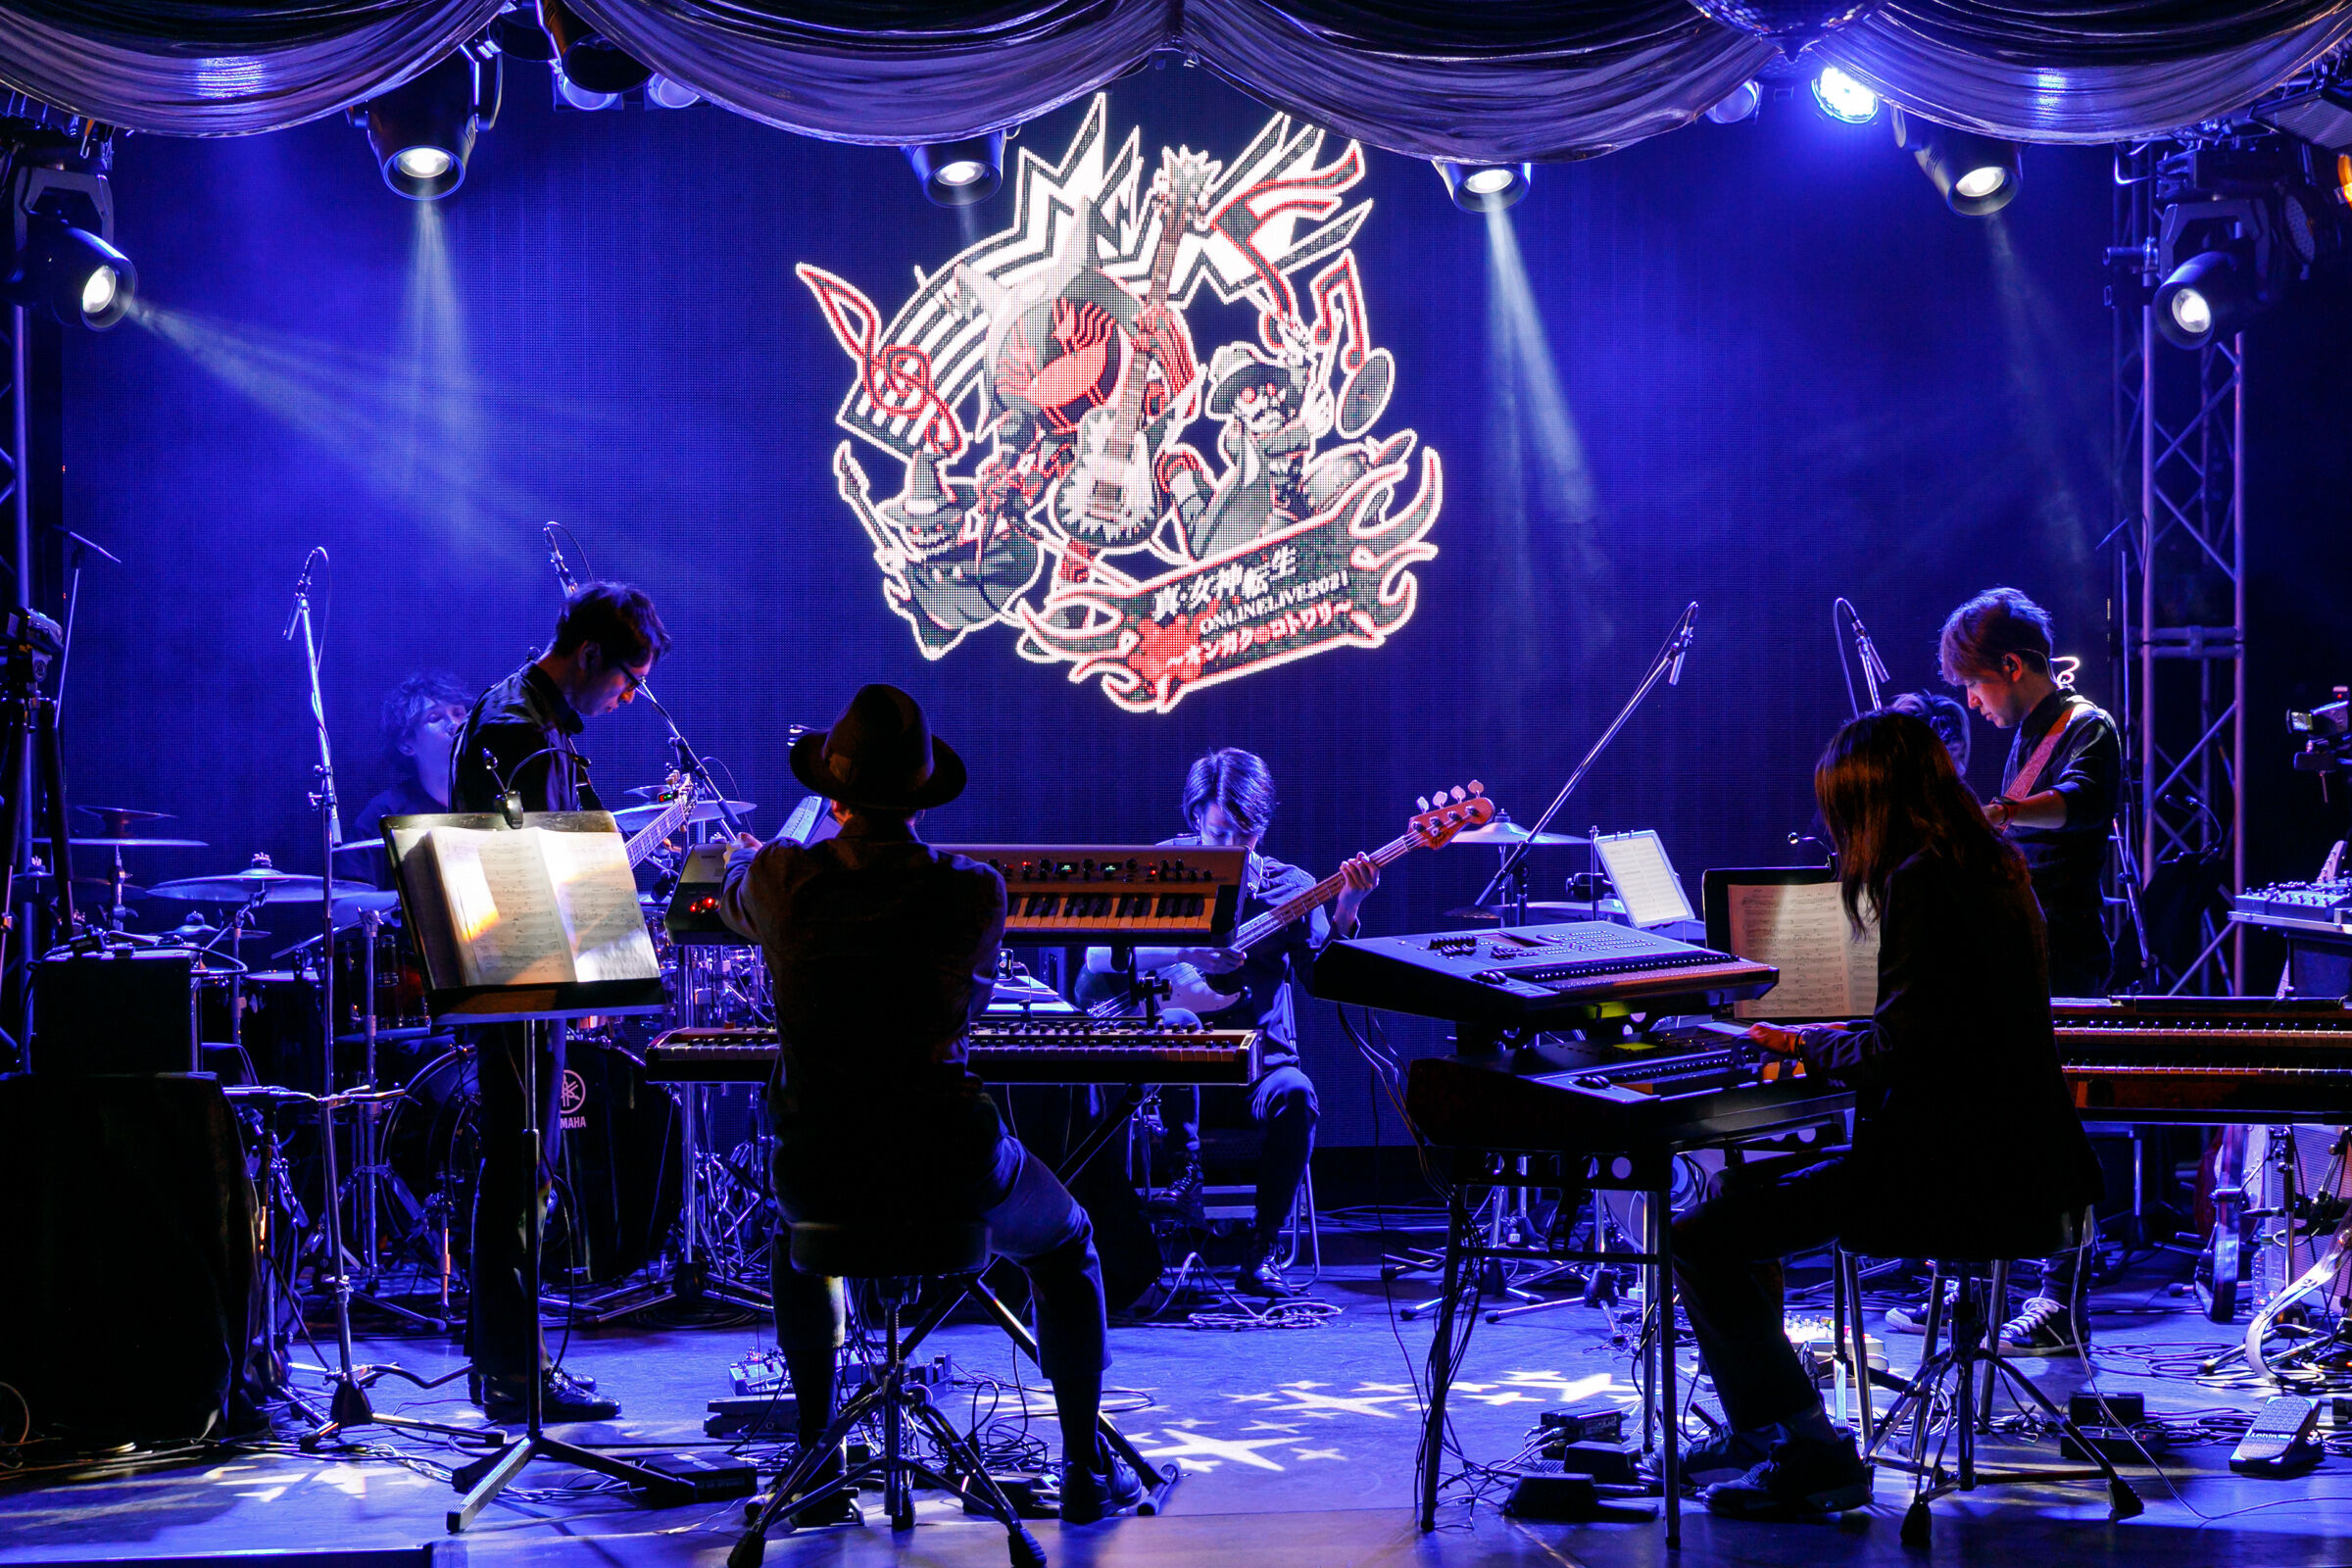 The band LaiD Back Devil performs music from the Shin Megami Tensei series during the Shin Megami Tensei Online Live 2021 concert.